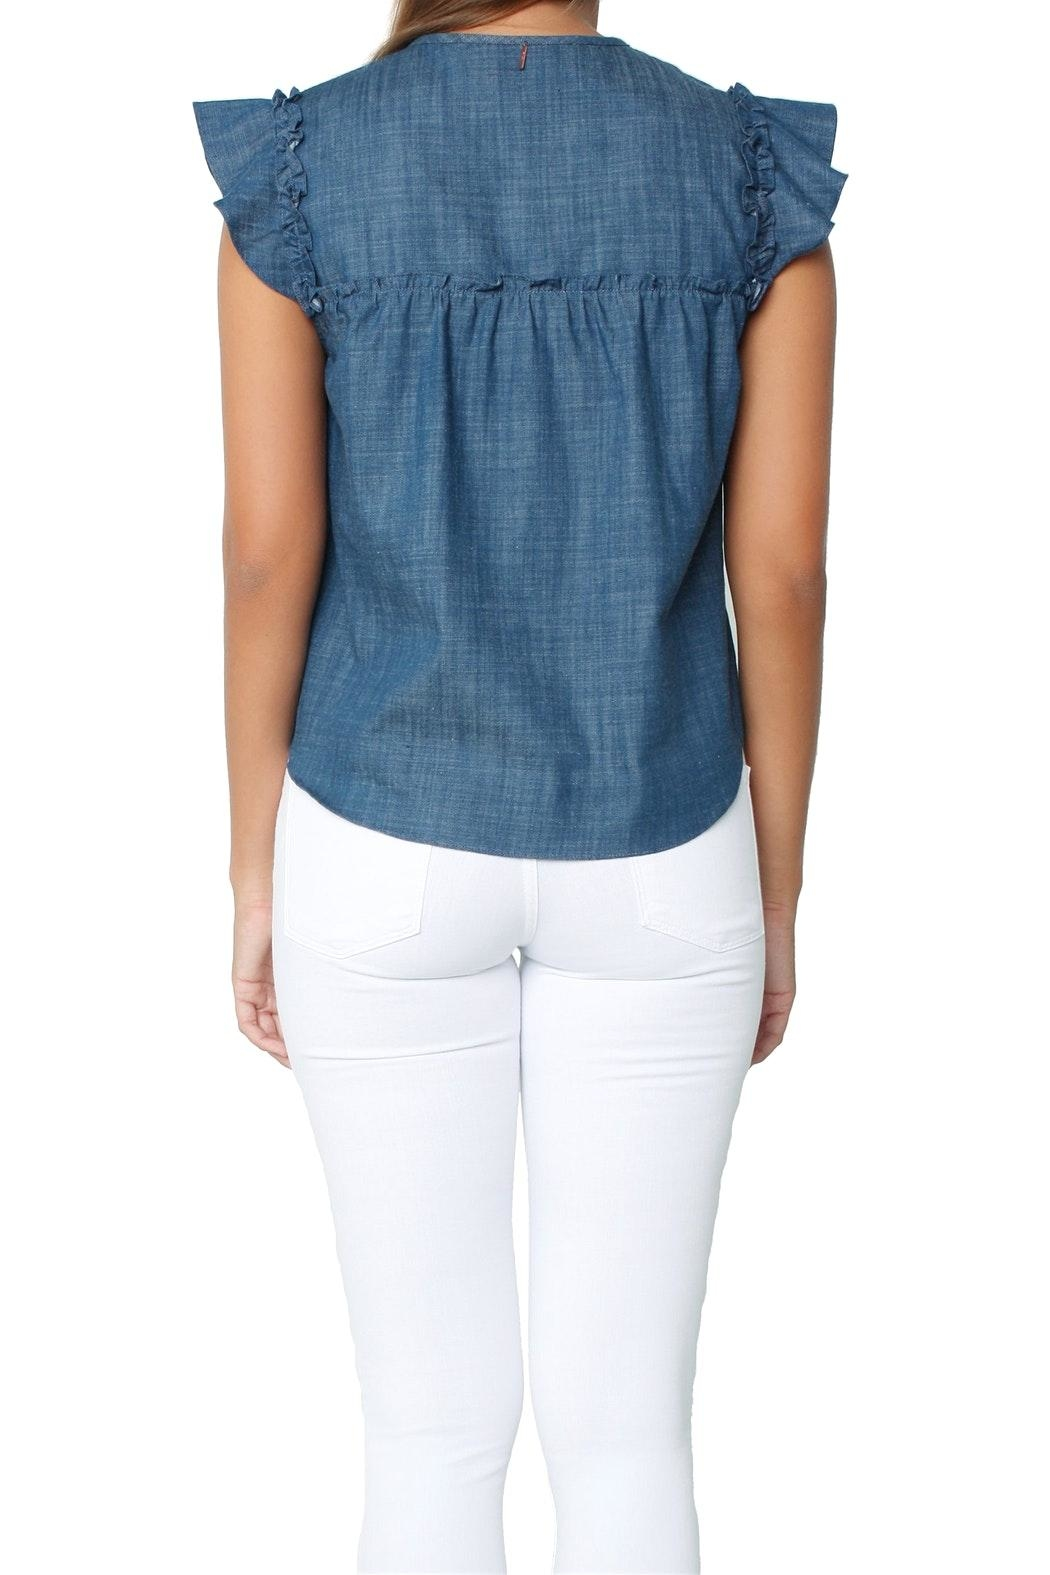 Misa Ale Top Indigo - Back Cropped Image